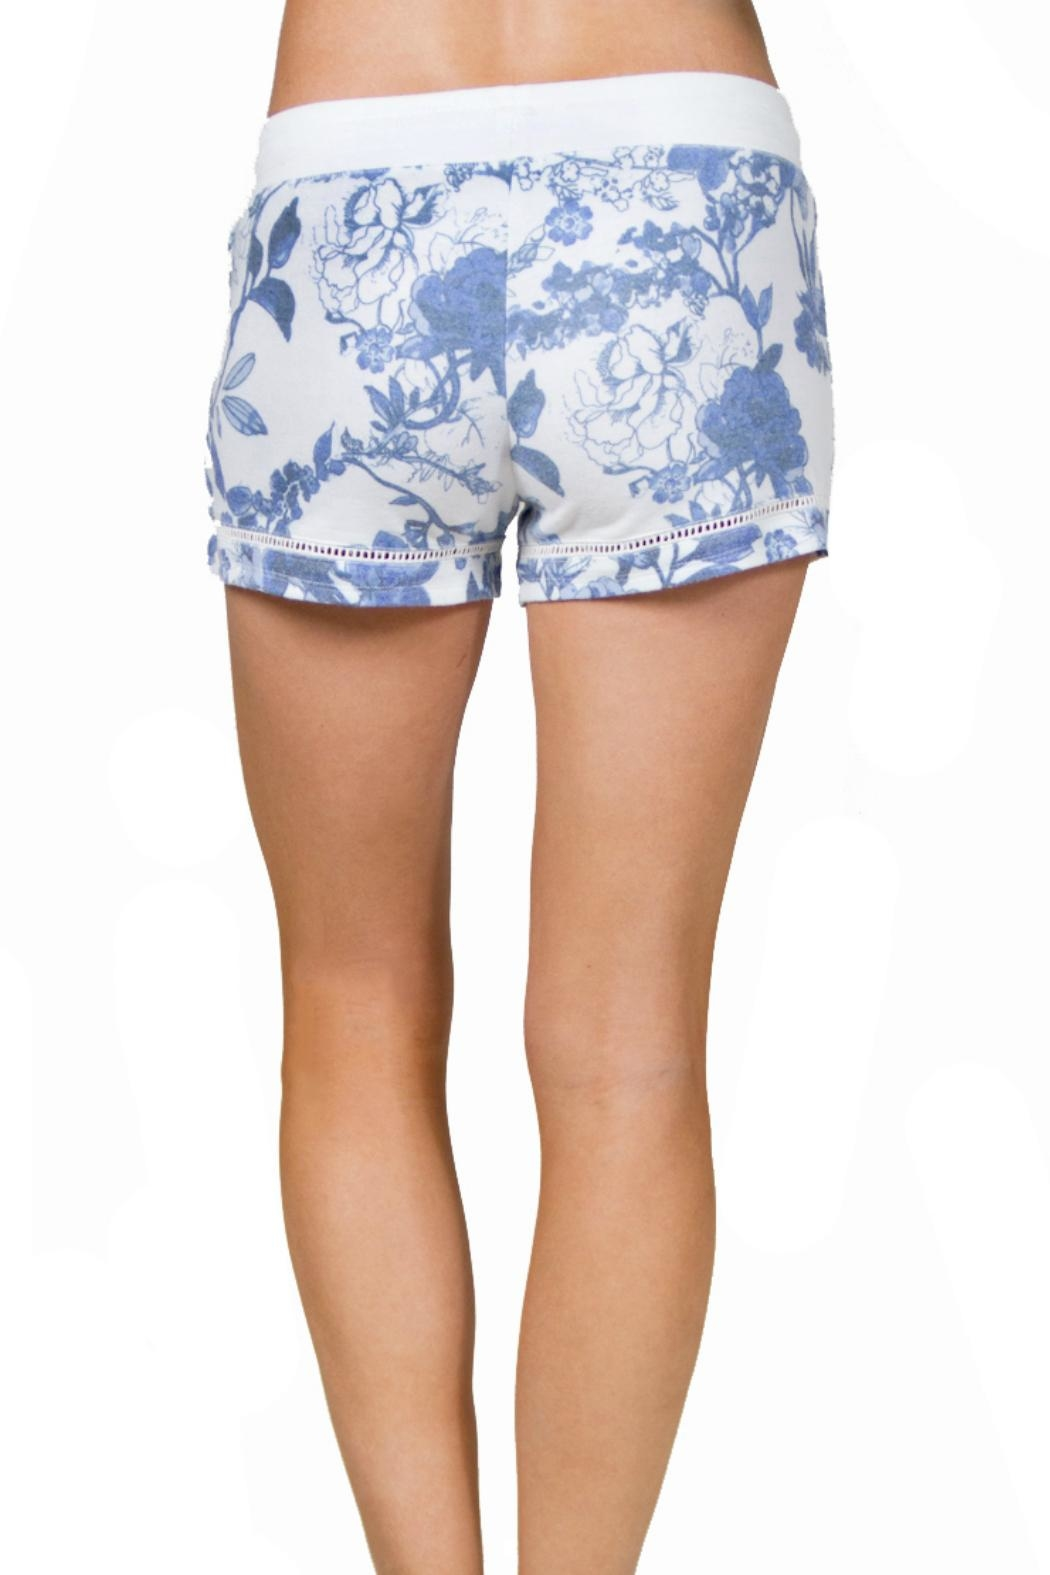 P.J. Salvage Floral Print Shorts - Front Full Image